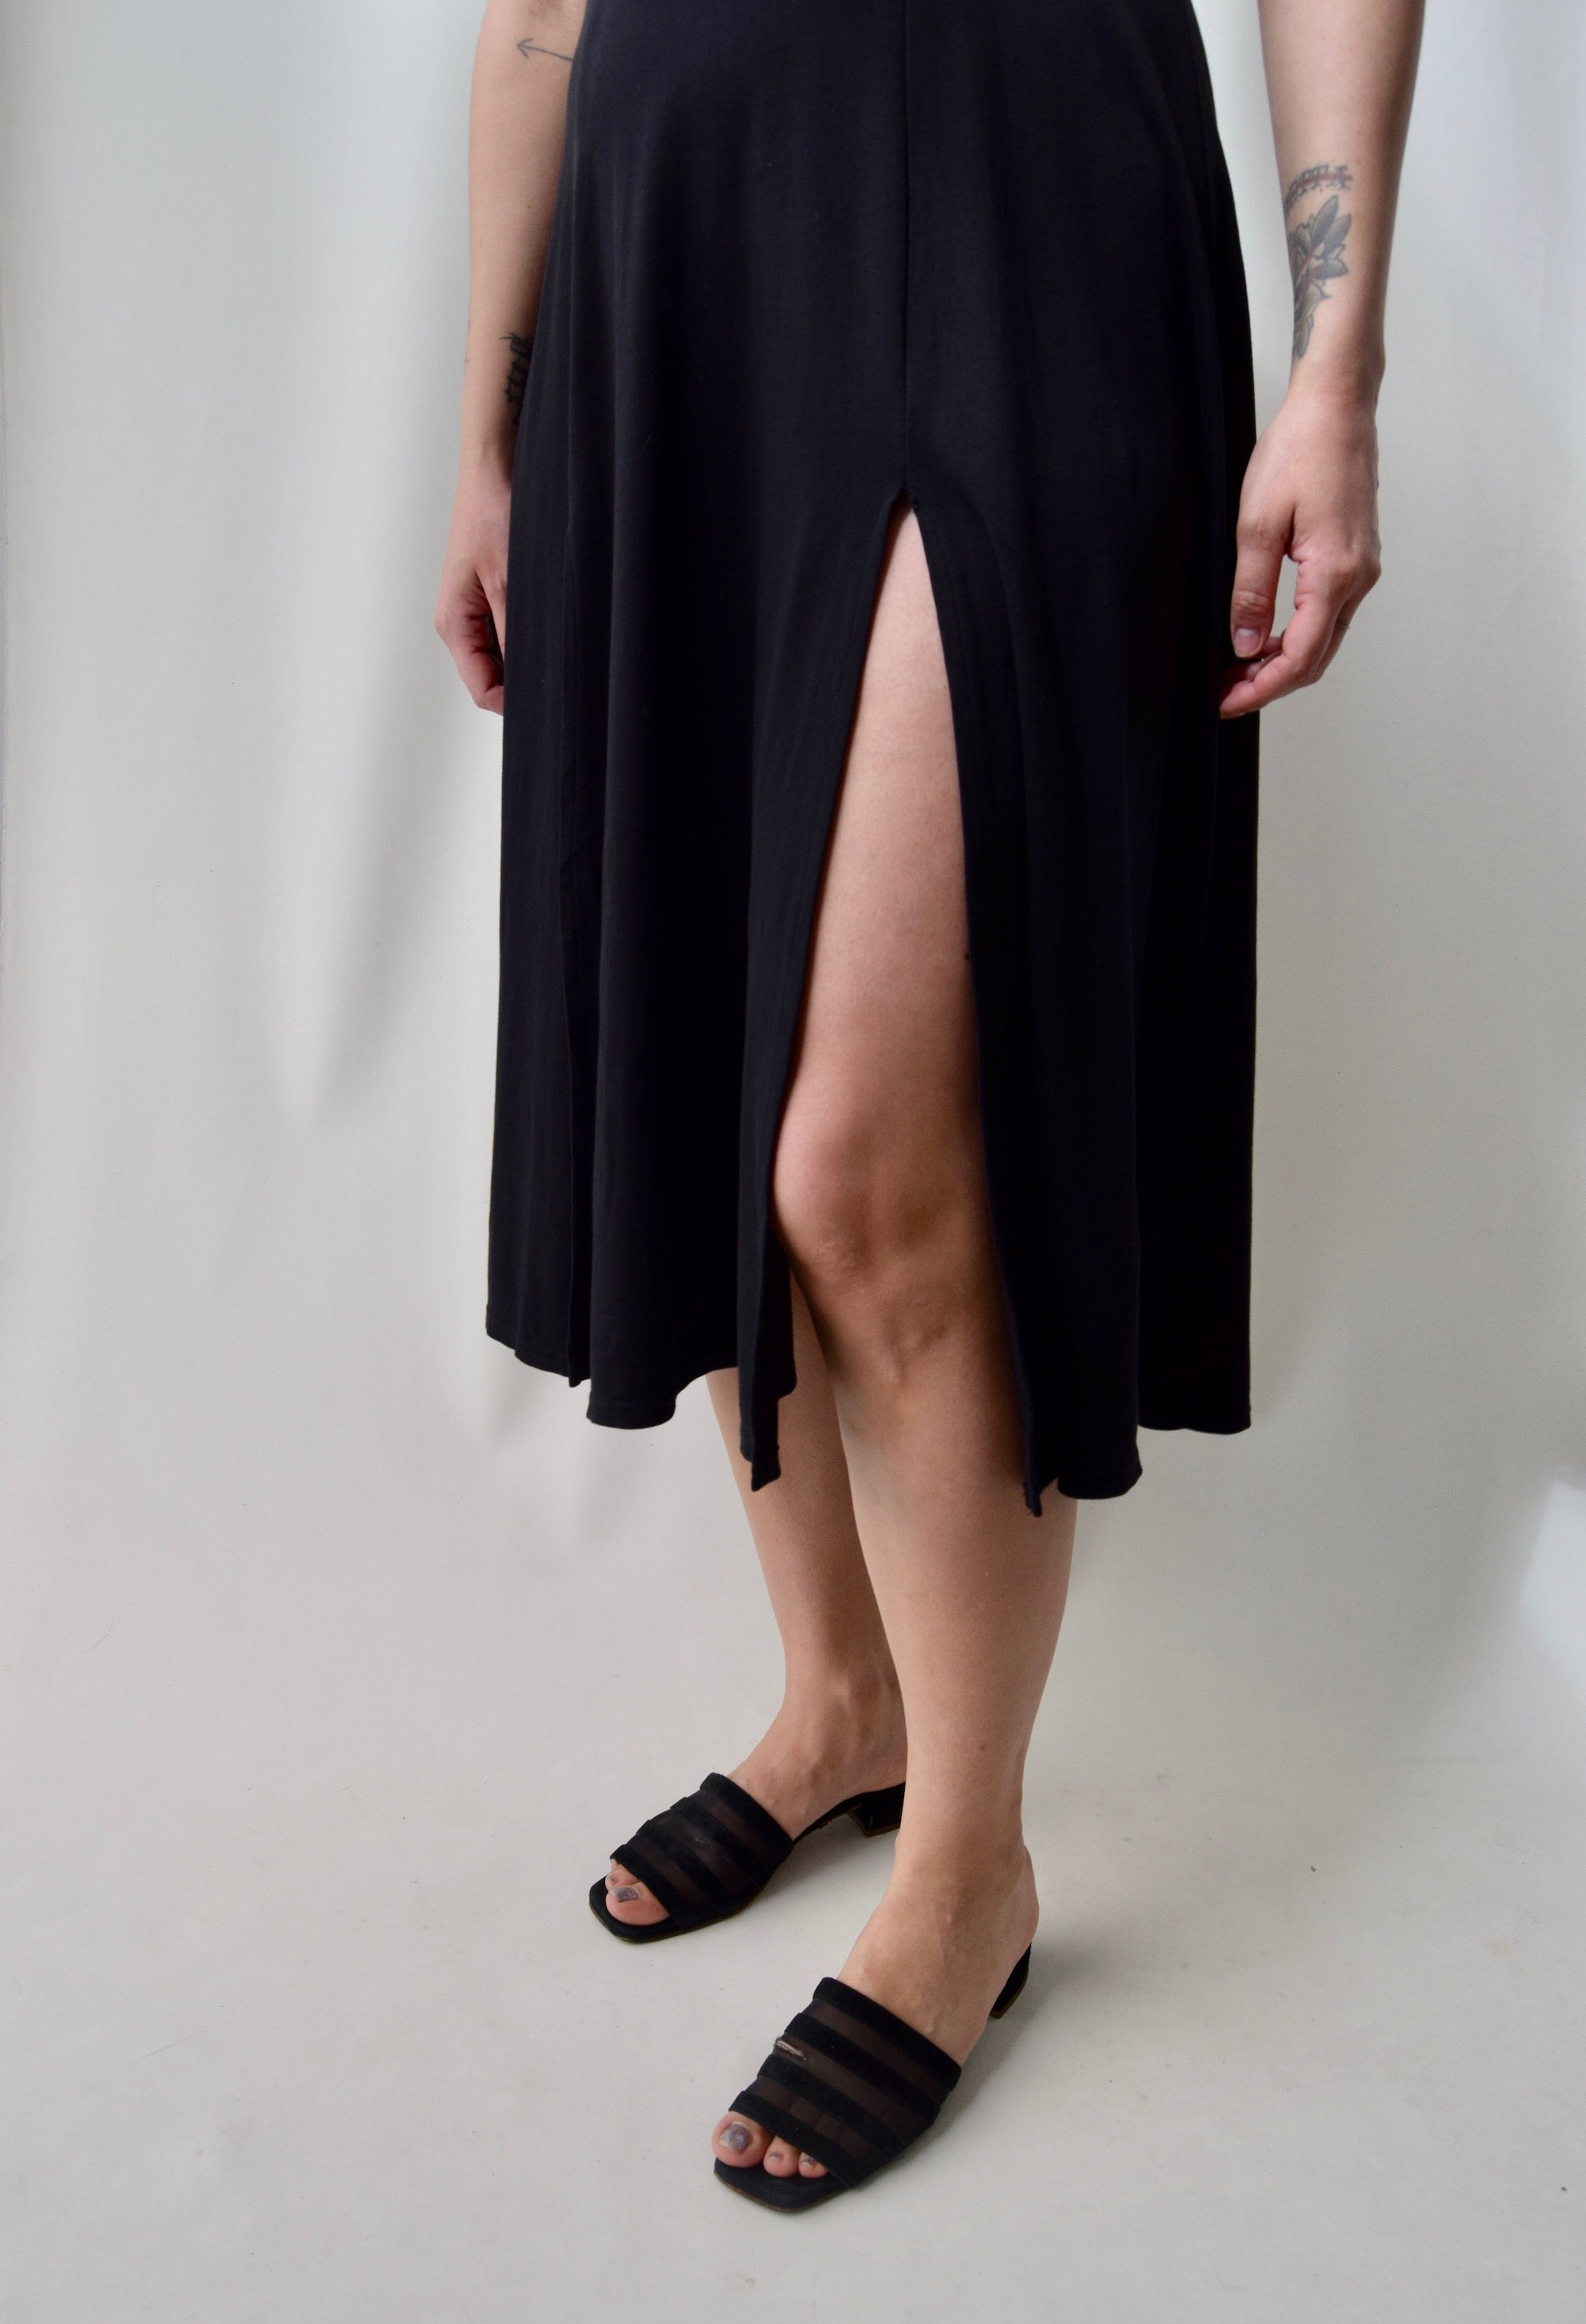 90's 'dalmys' Quadruple Slit Knit Dress